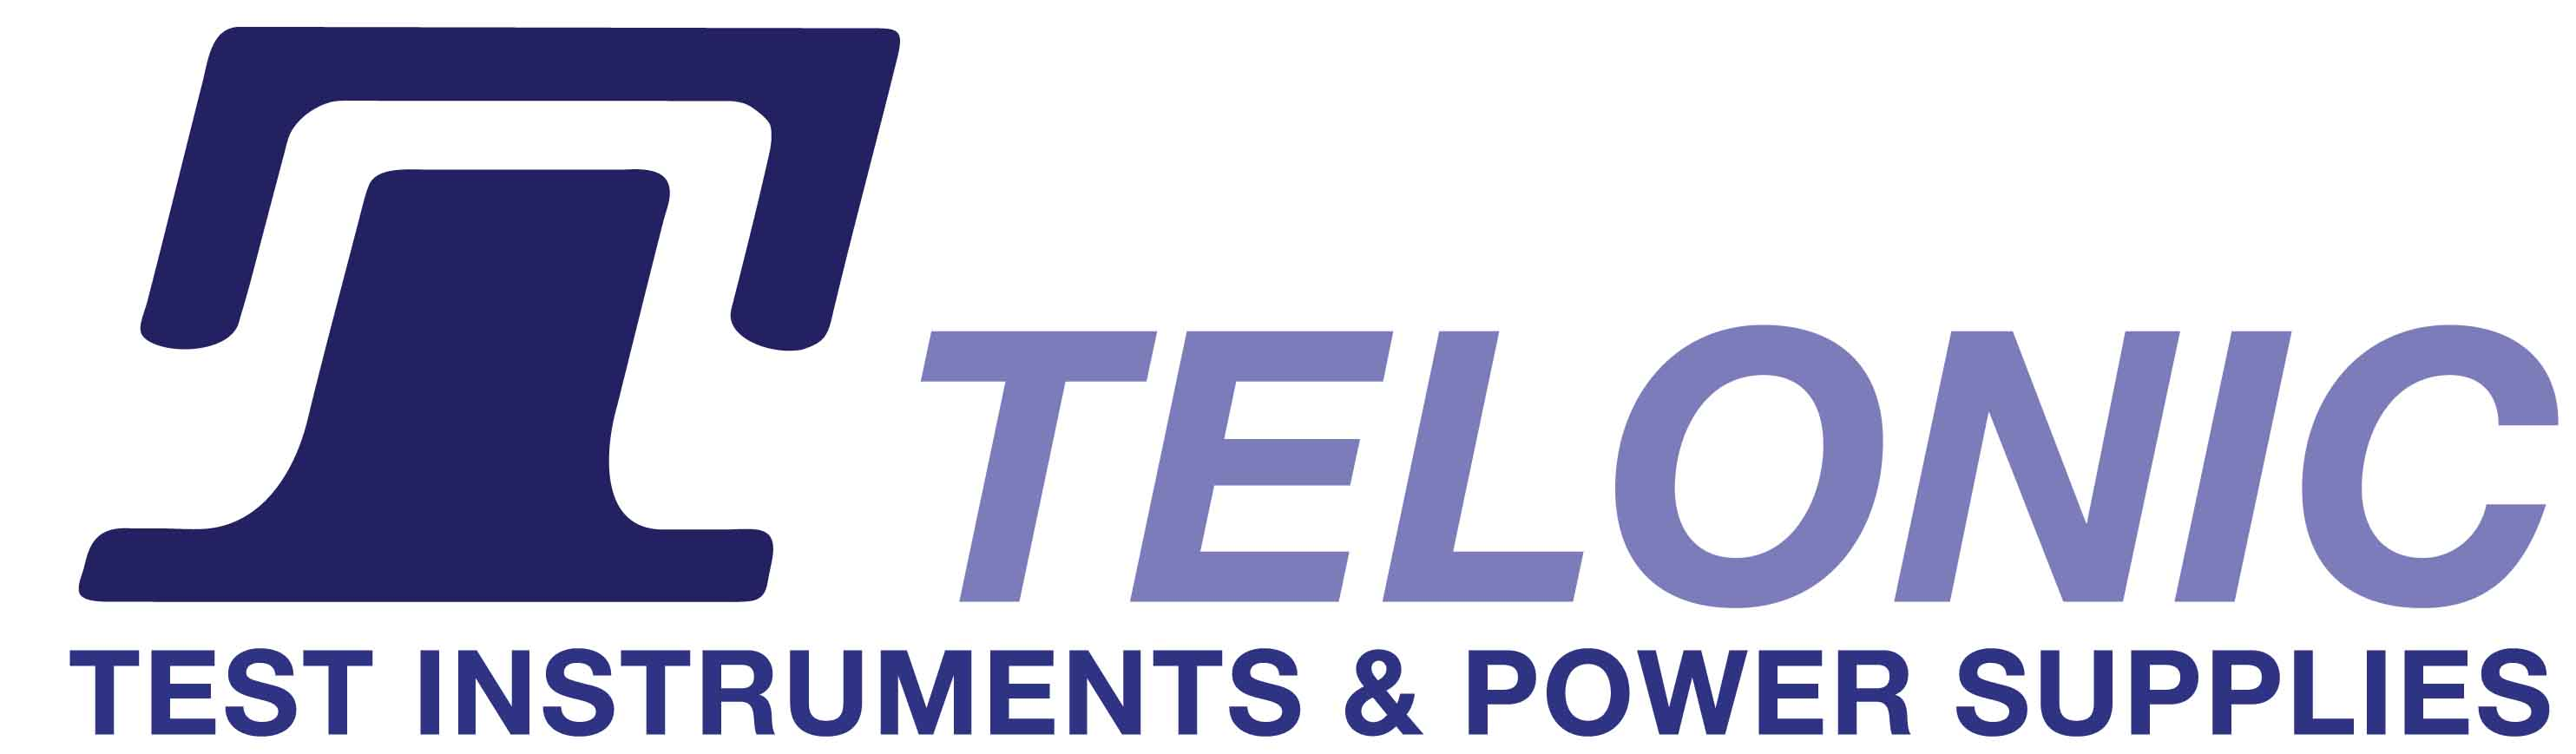 Kikusui AC DC Flash Test, Leakage Current testers and earth bond testing equipment available in the UK from electrical safety testing specialist telonic instruments